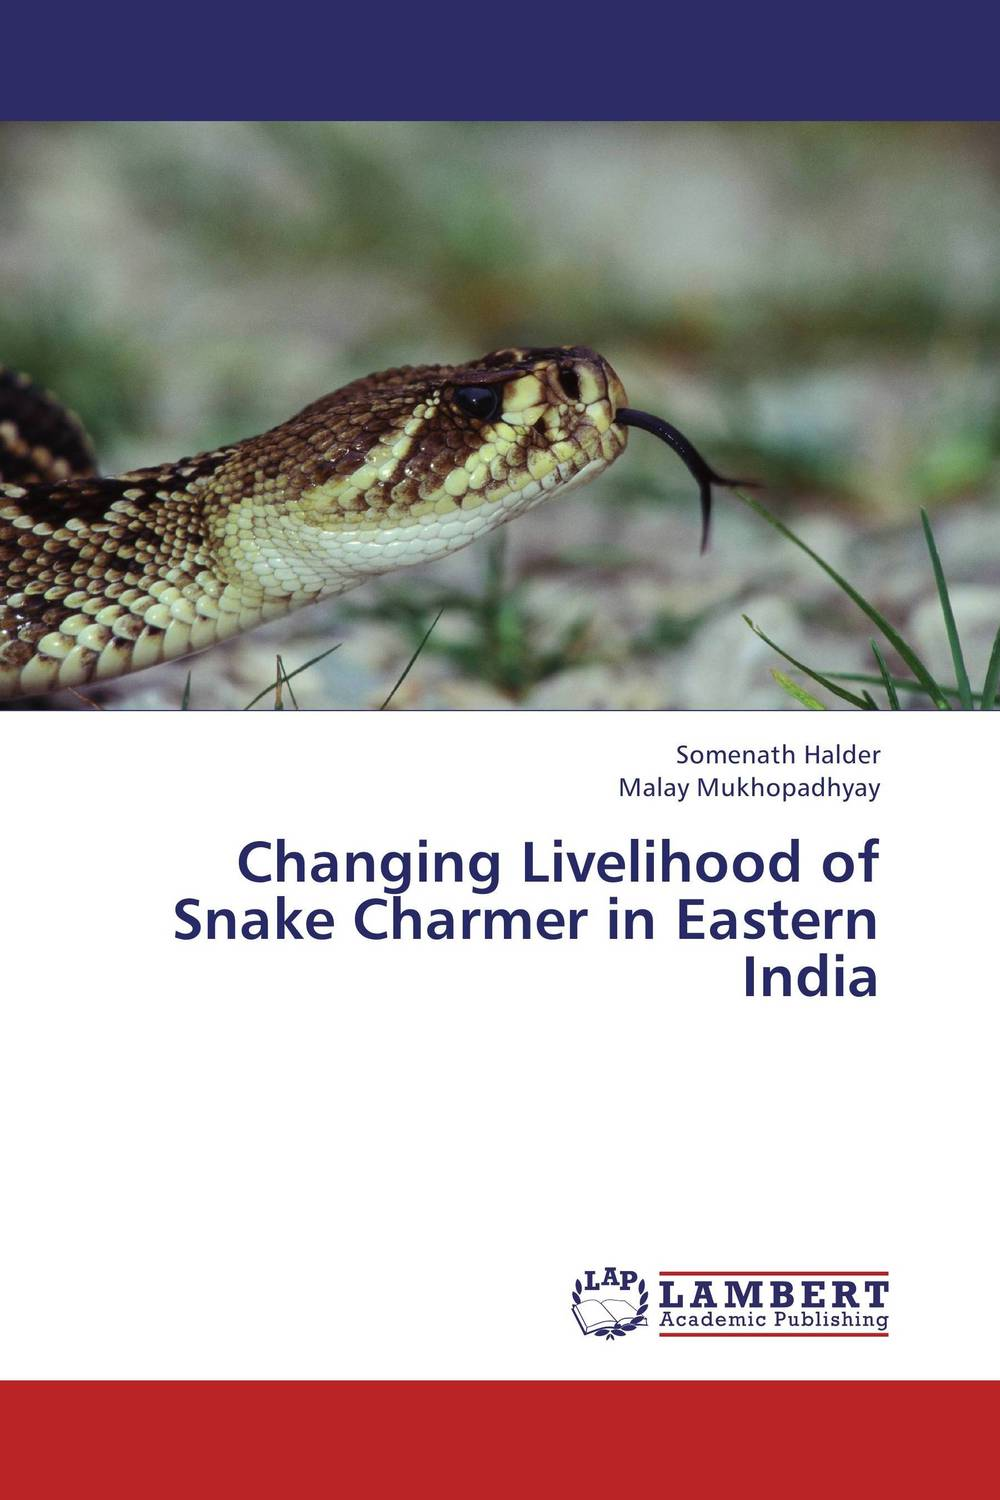 Changing Livelihood of Snake Charmer in Eastern India anupama singh and devenderjit kaur the changing identities of women in india real and imagined